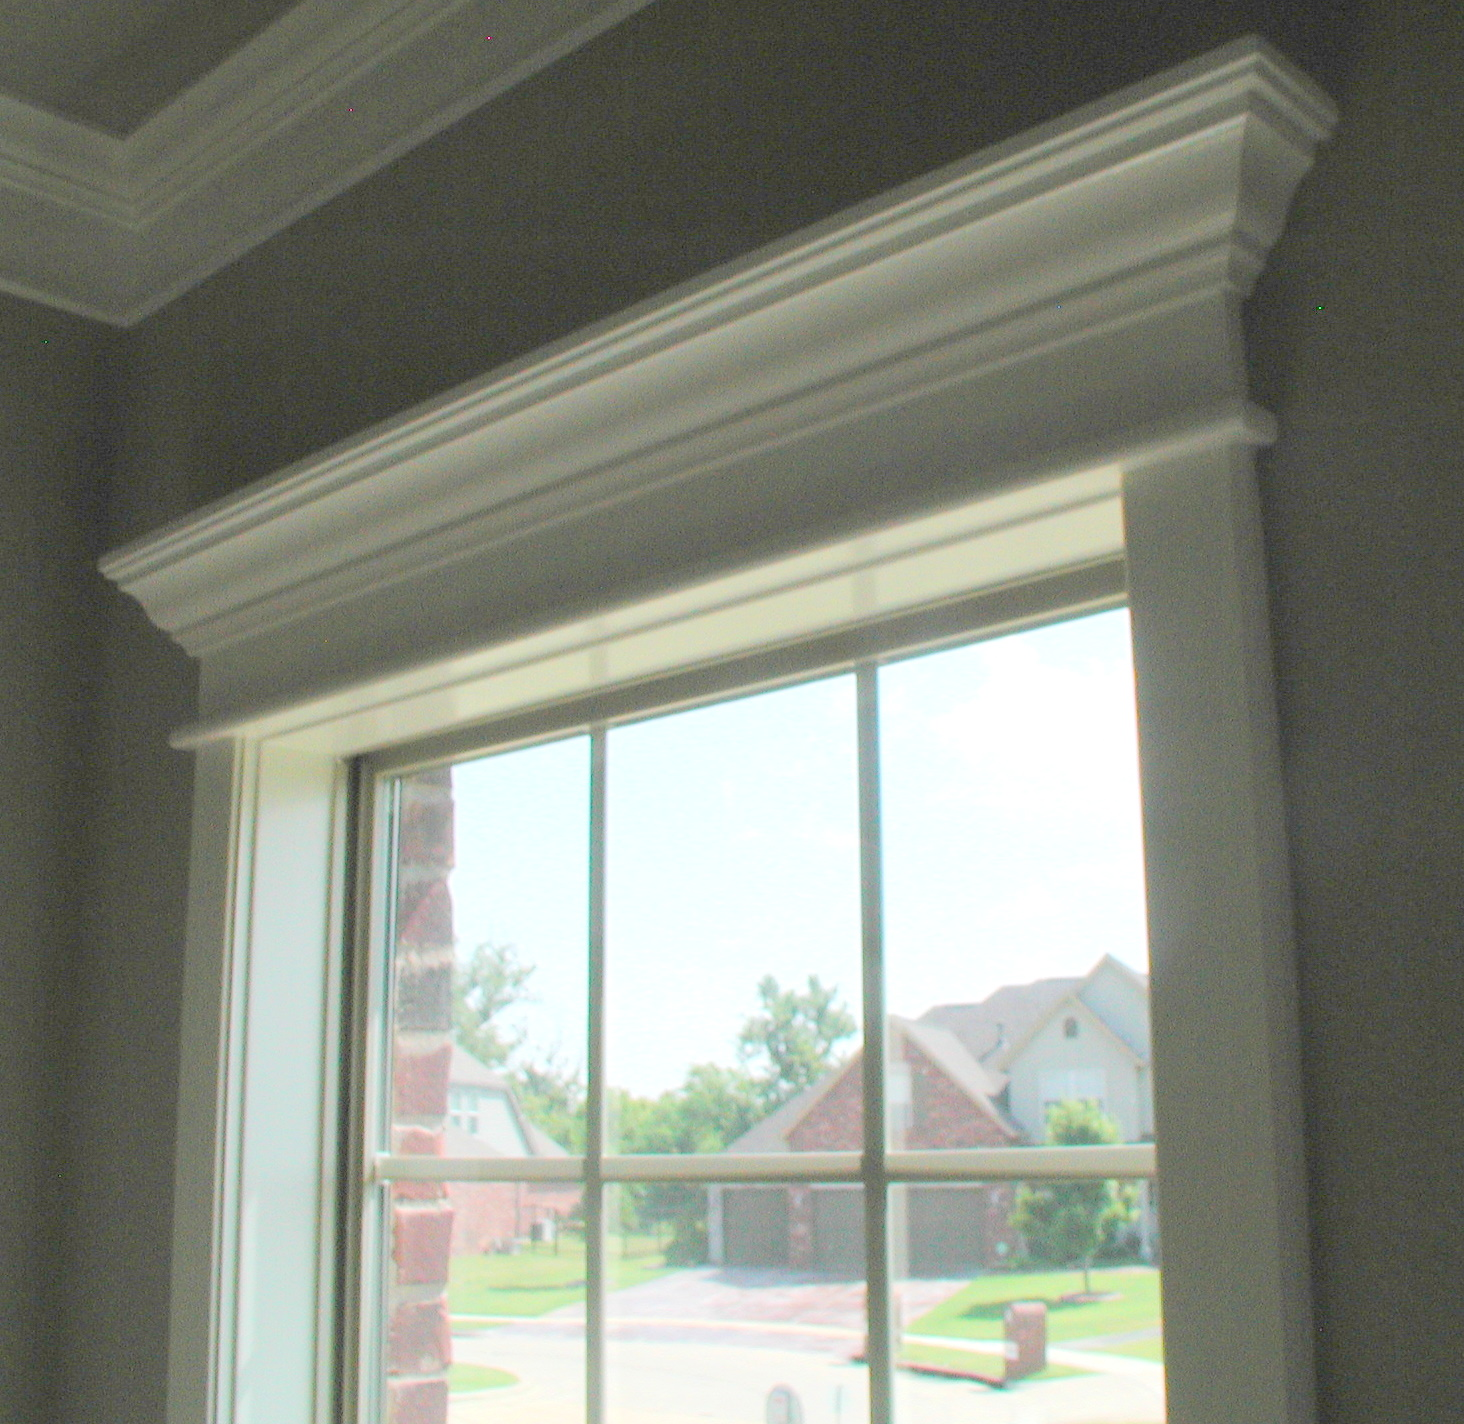 Front Elevation Molding : Window trim molding ideas joy studio design gallery